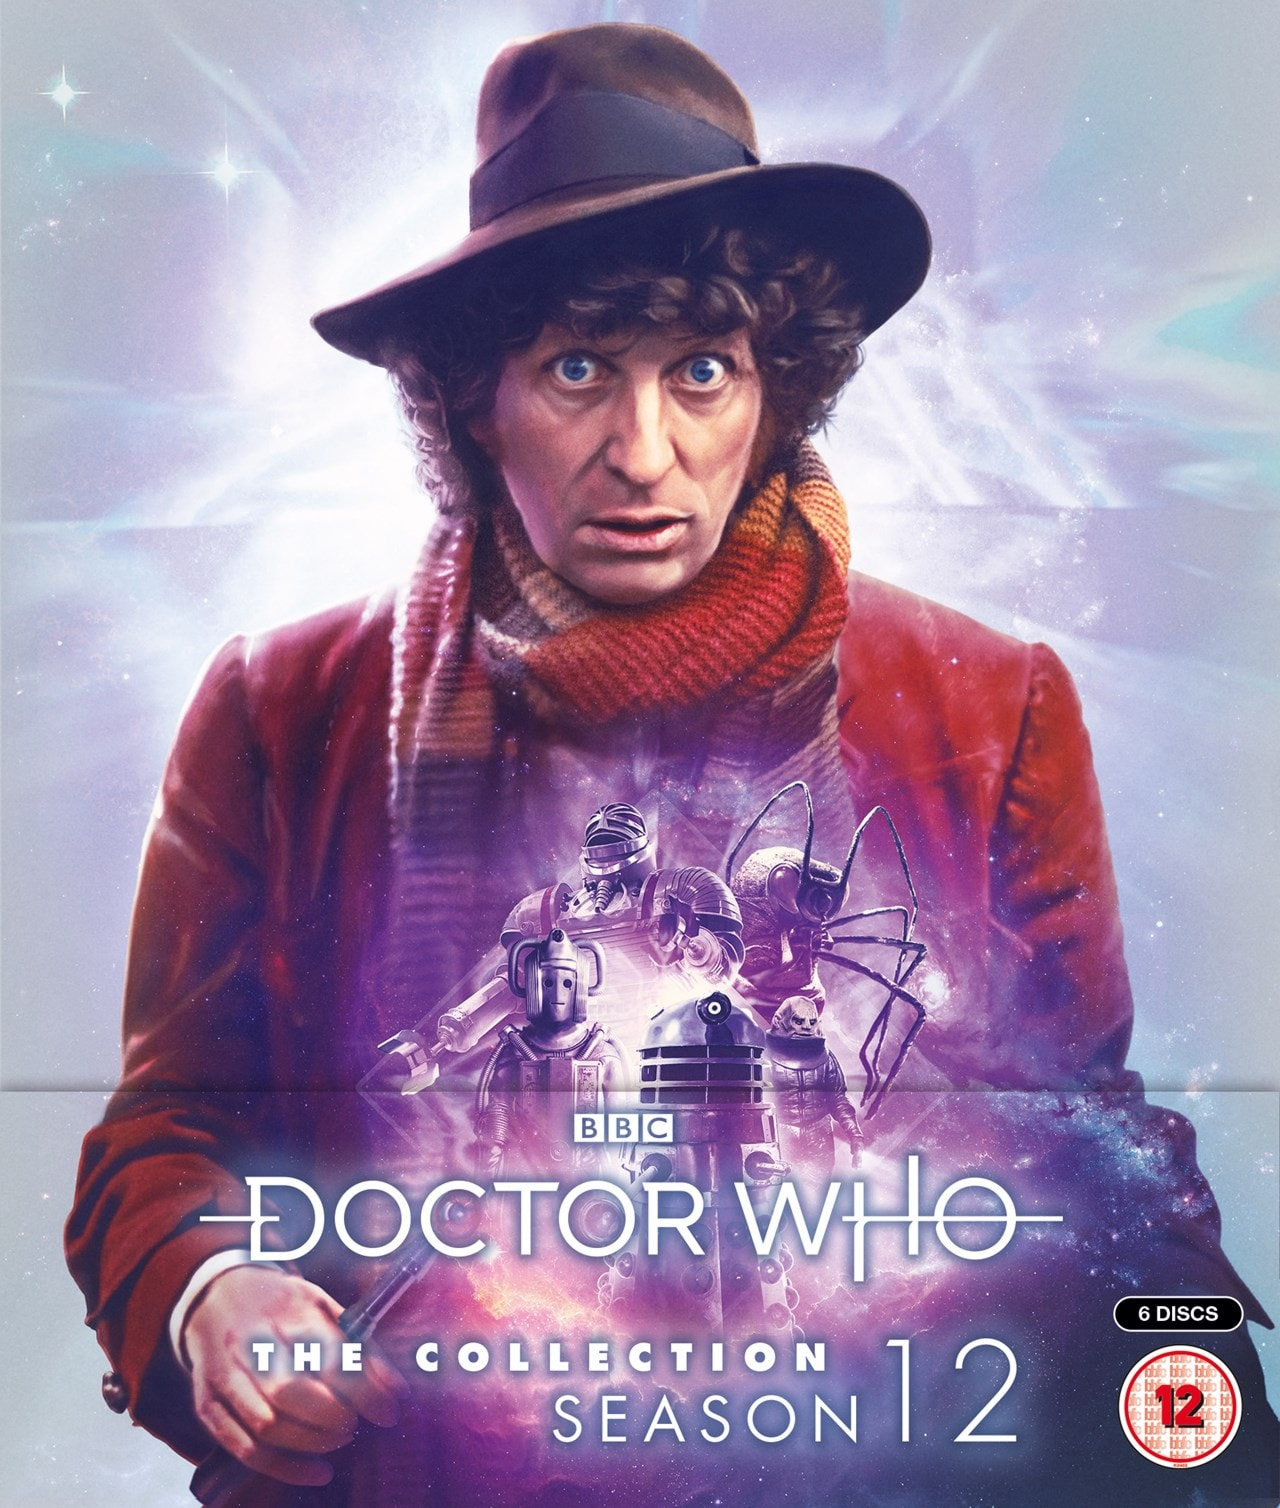 Doctor Who: The Collection - Season 12 Limited Edition Box Set - 1